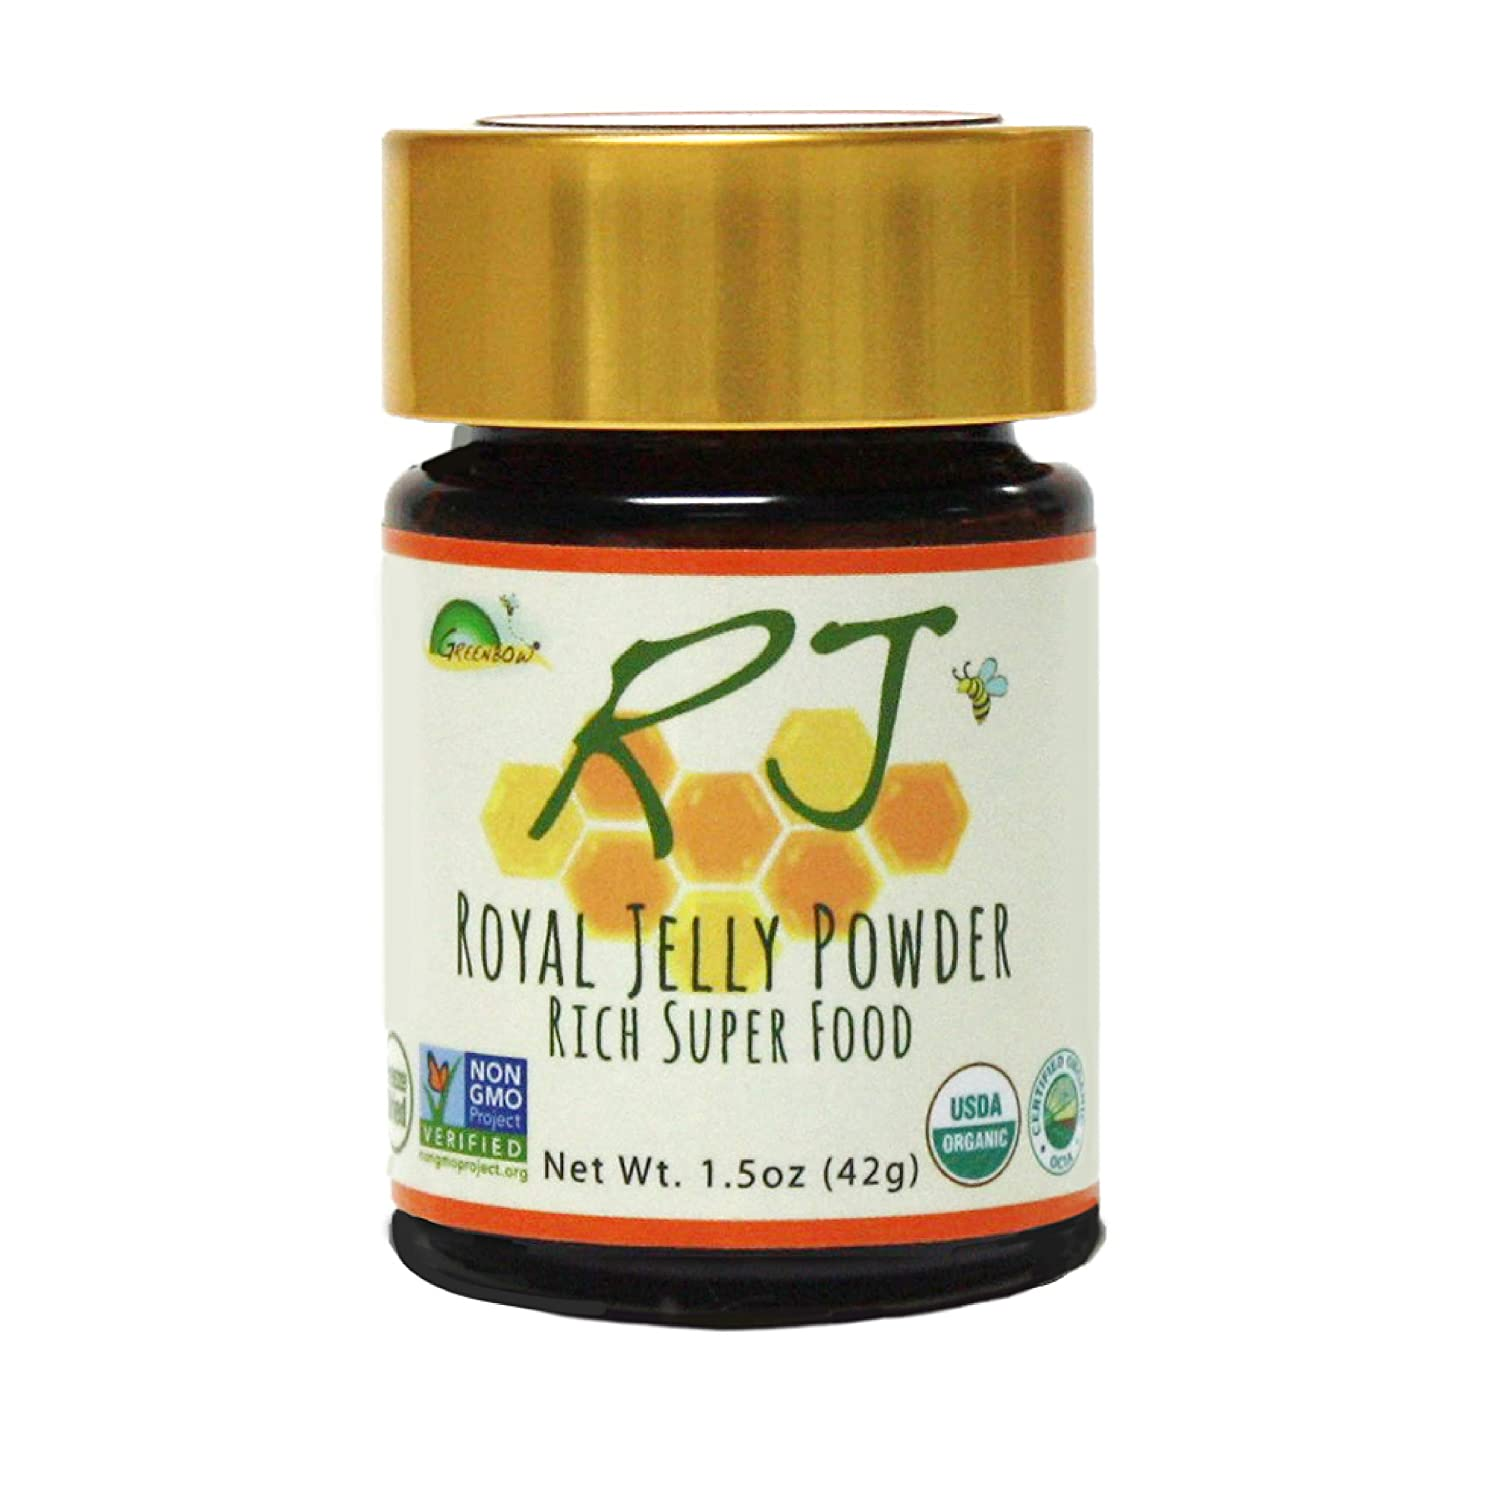 GREENBOW Royal Jelly Powder– 100% USDA Product Ranking integrated 1st place Ro Organic Certified